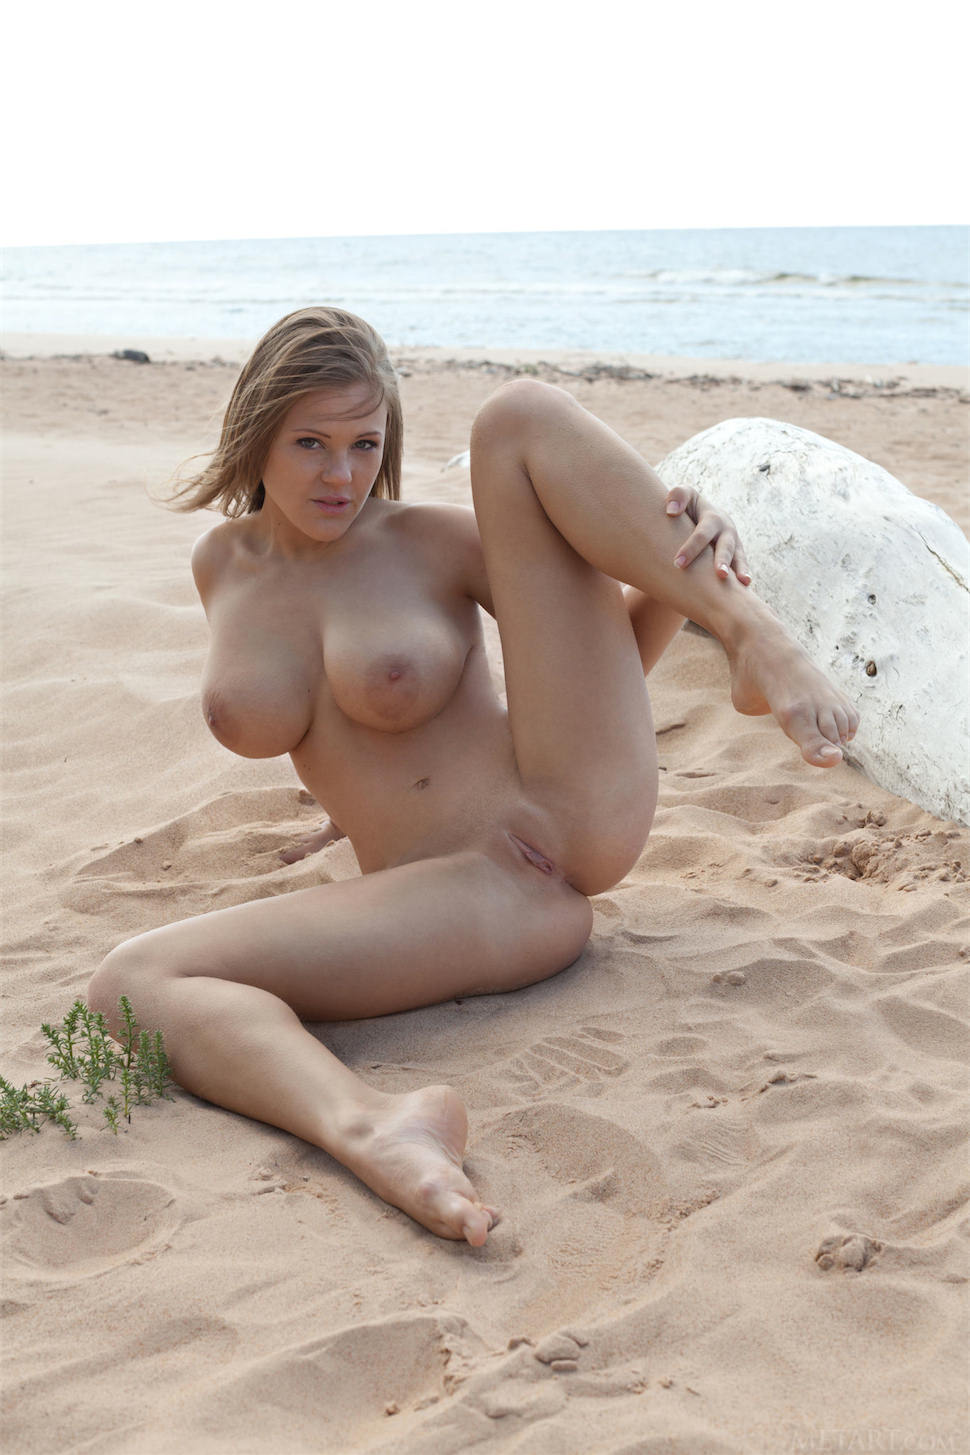 beautiful girl xxx hd pics in beaches